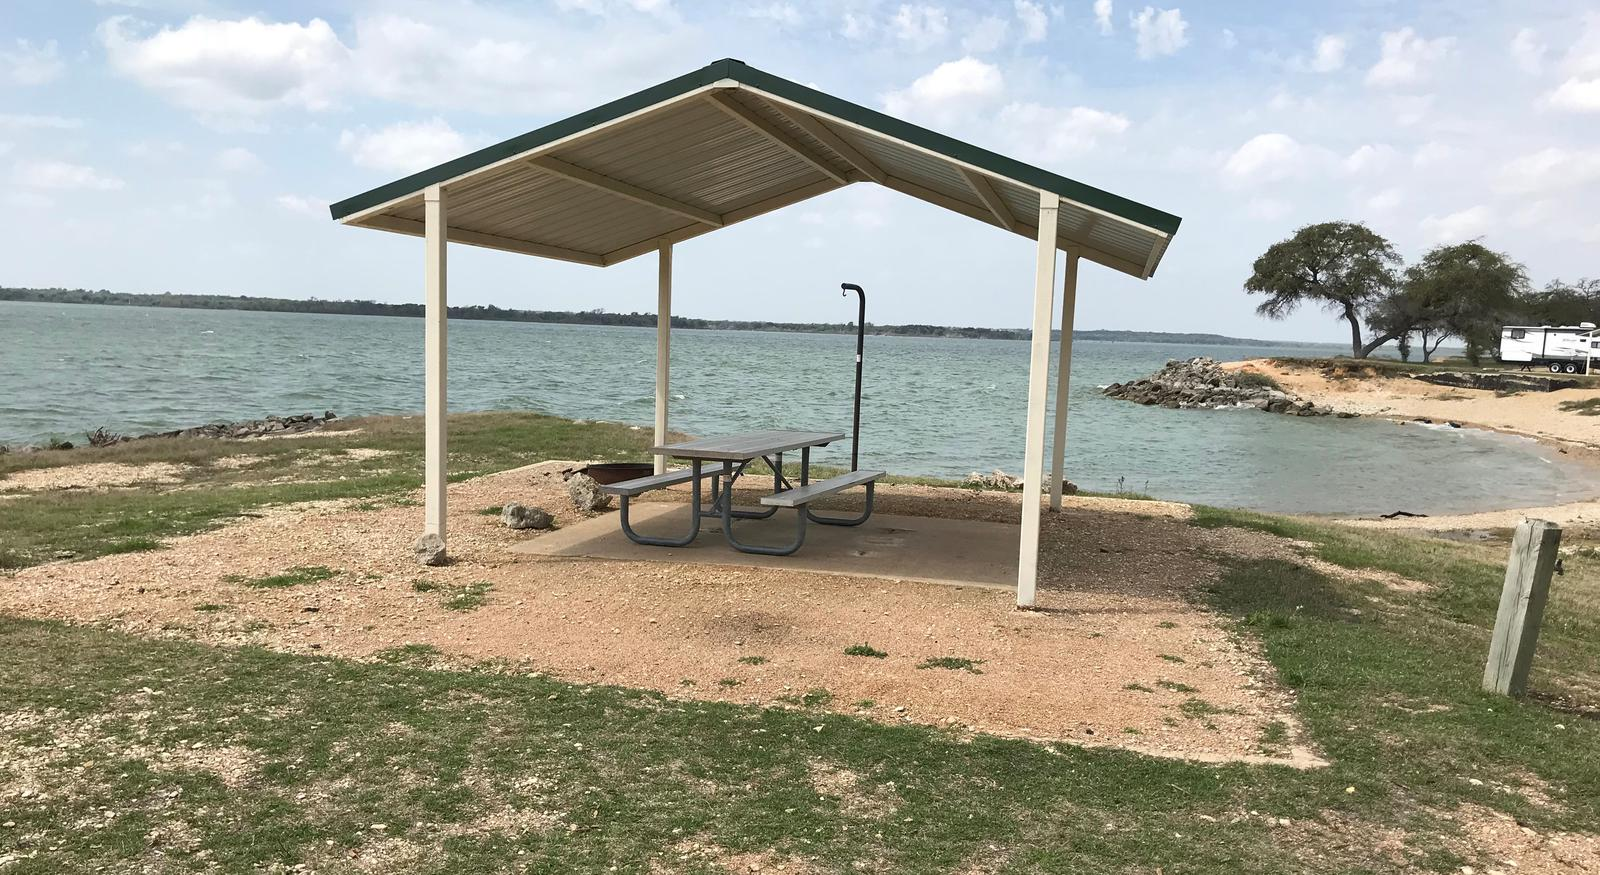 Tent site with covered picnic table and fire ring.  Site is located very close to shoreline of Waco Lake